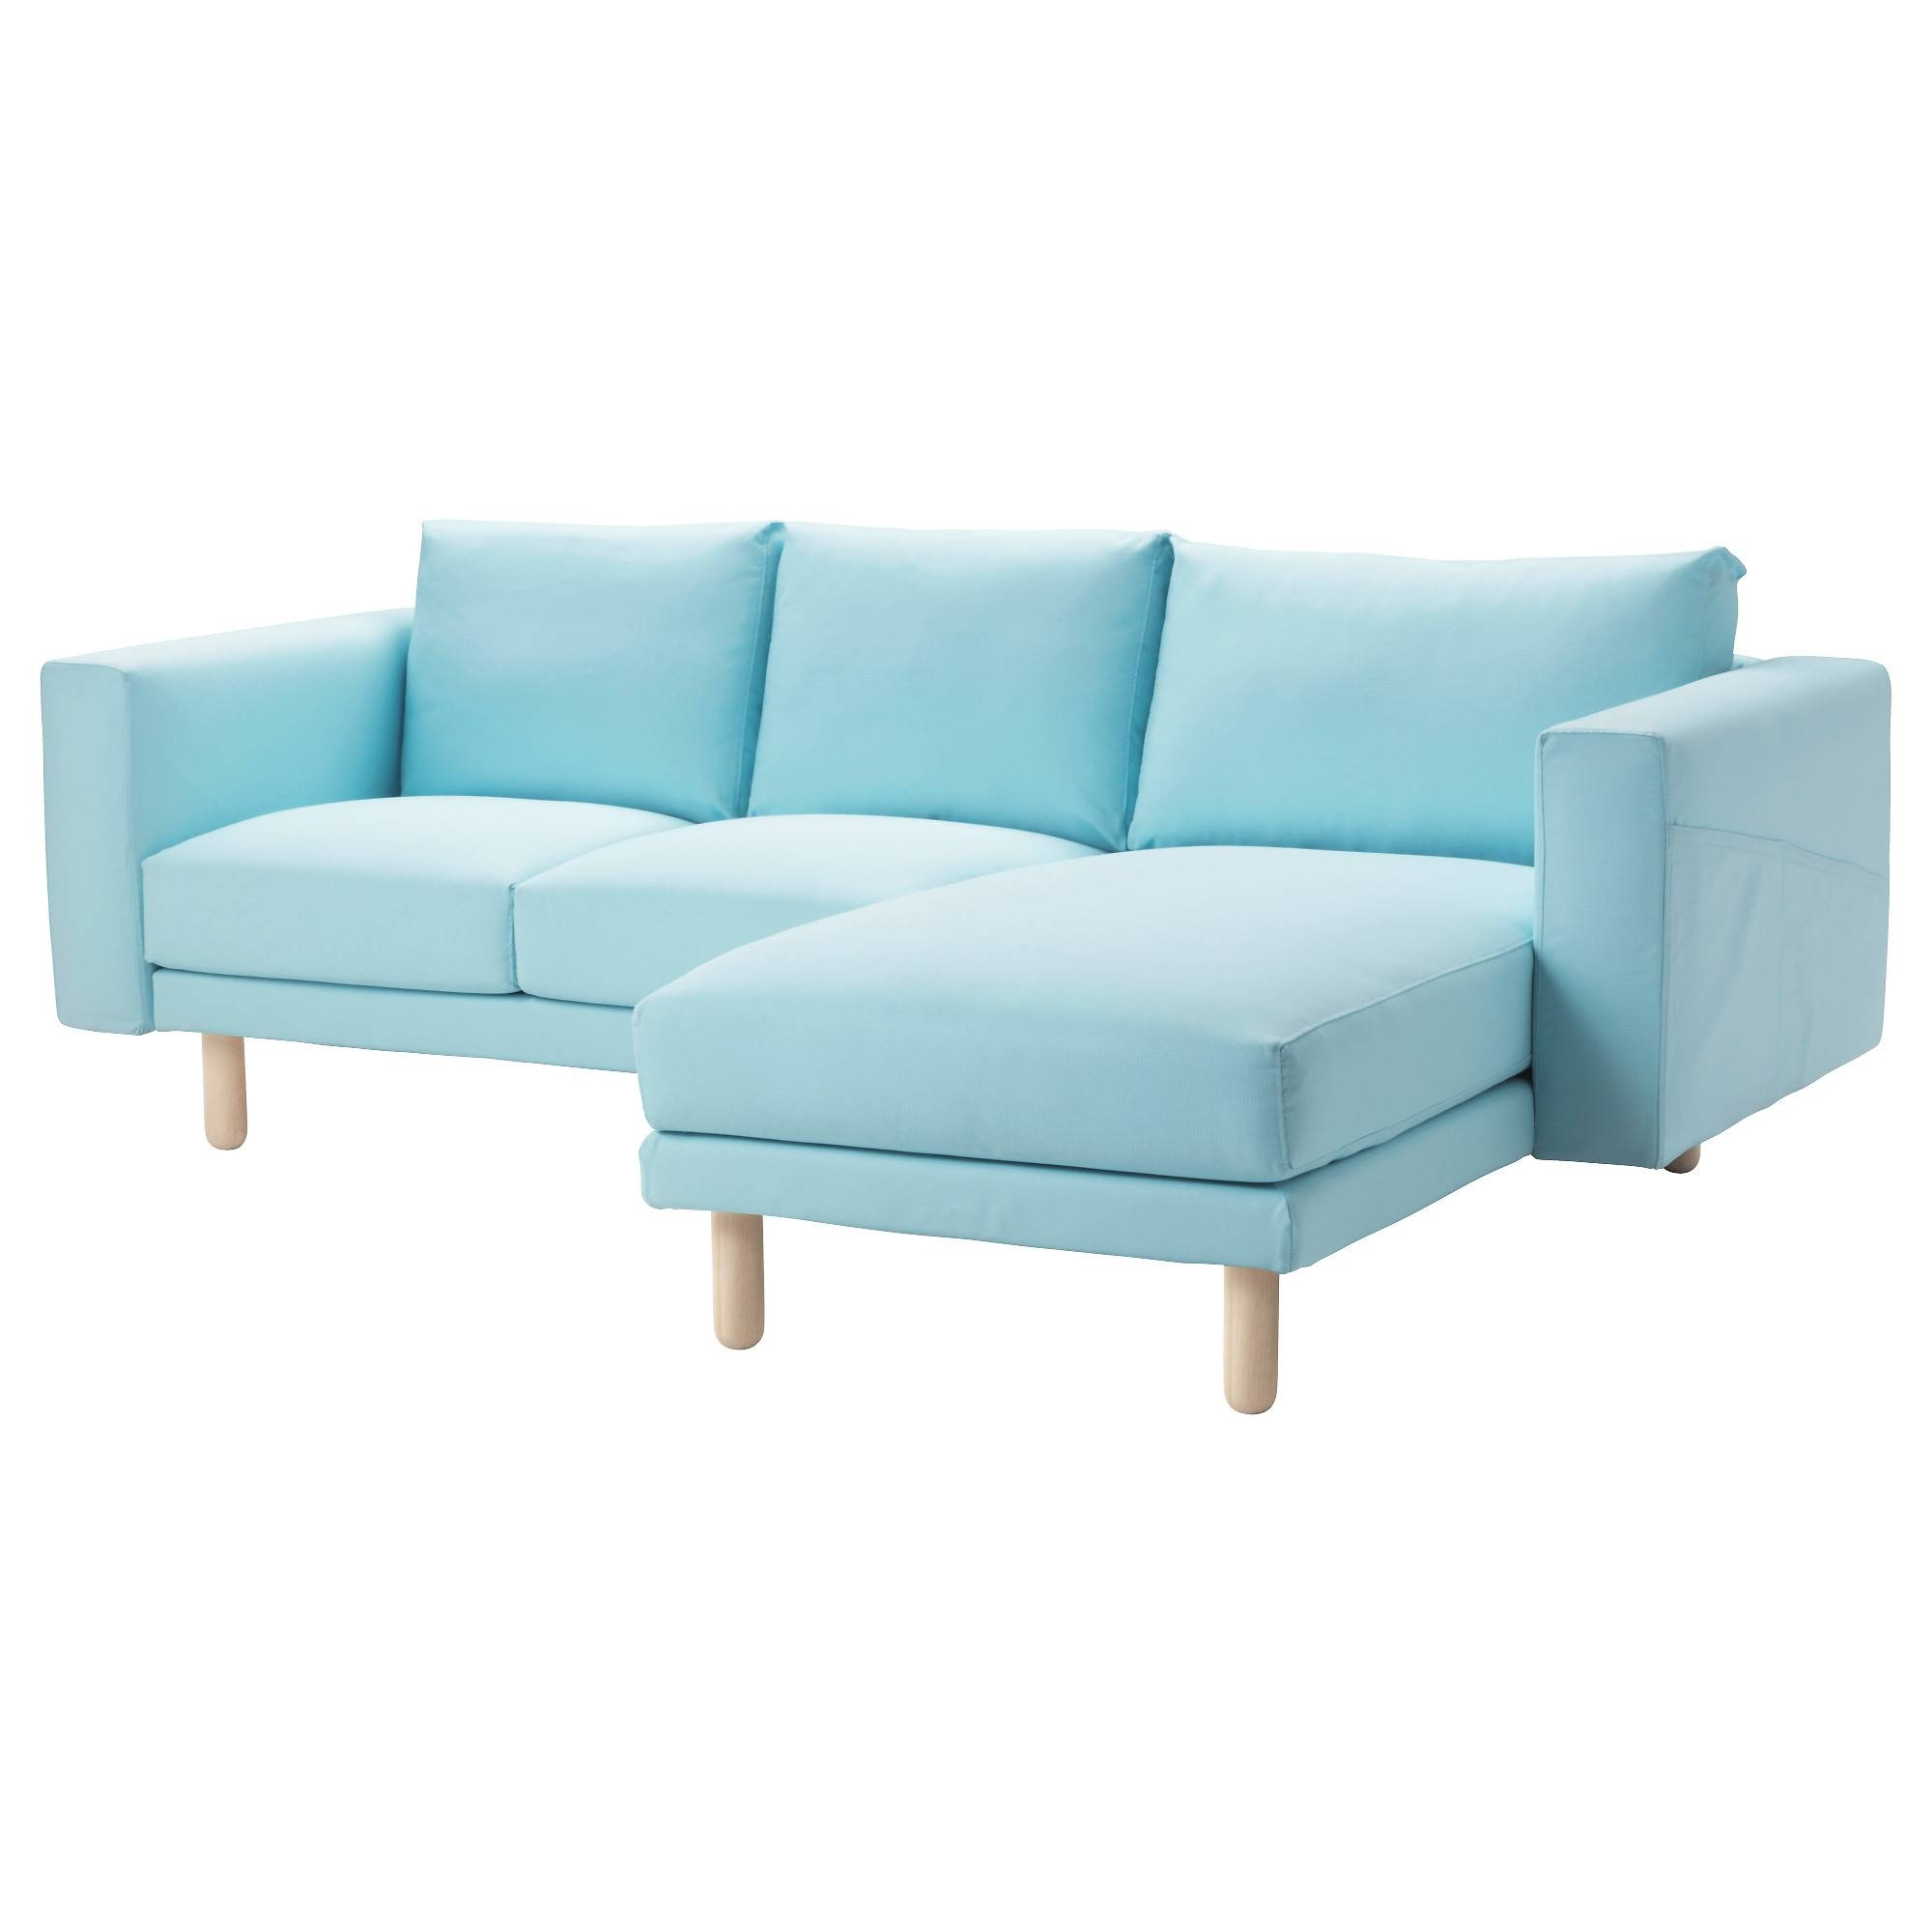 2017 Latest 2 Seat Sectional Sofas